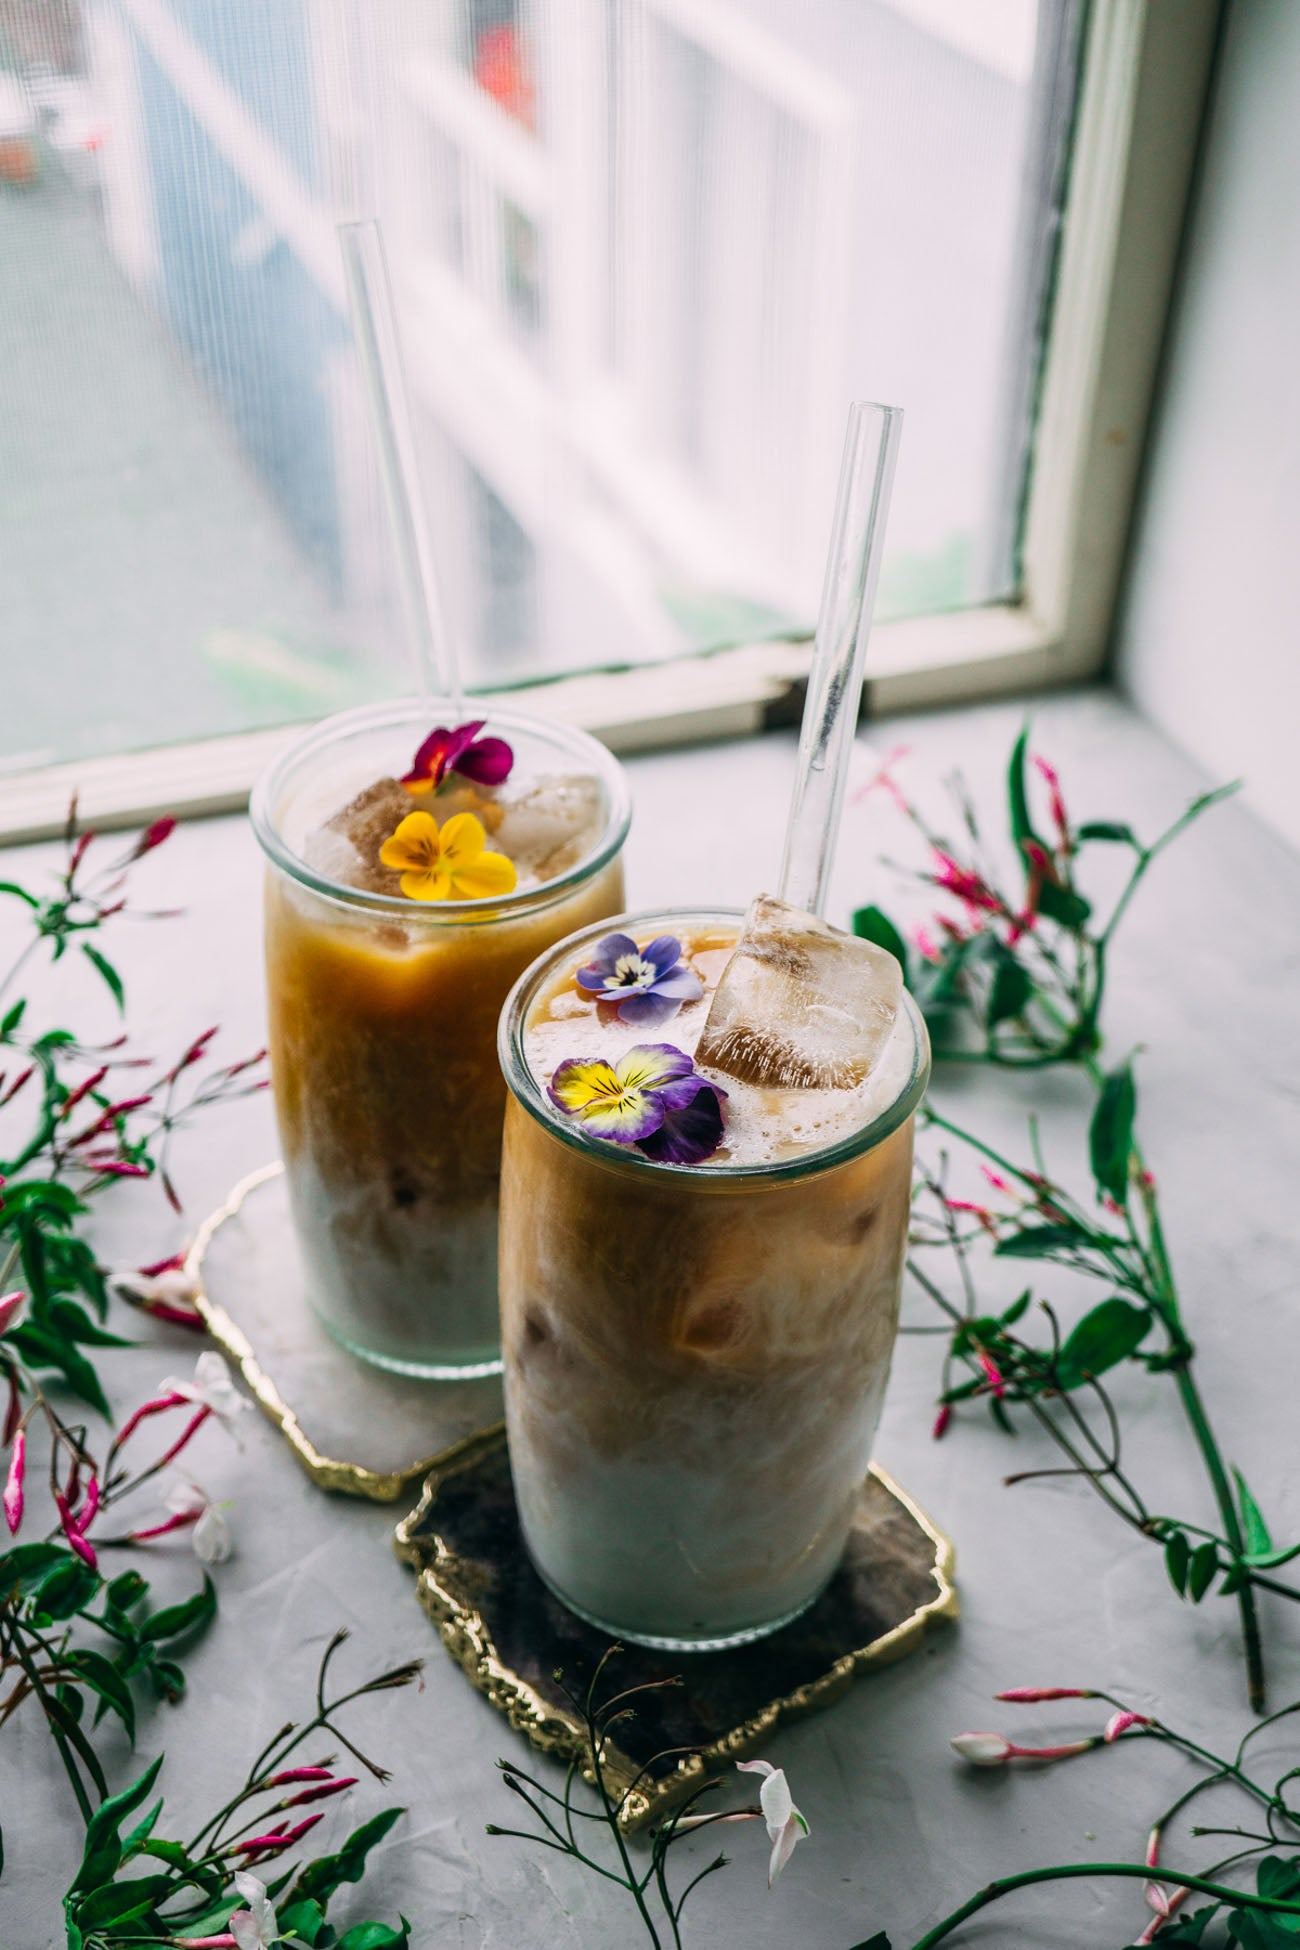 How to make creamy vegan Vietnamese latte